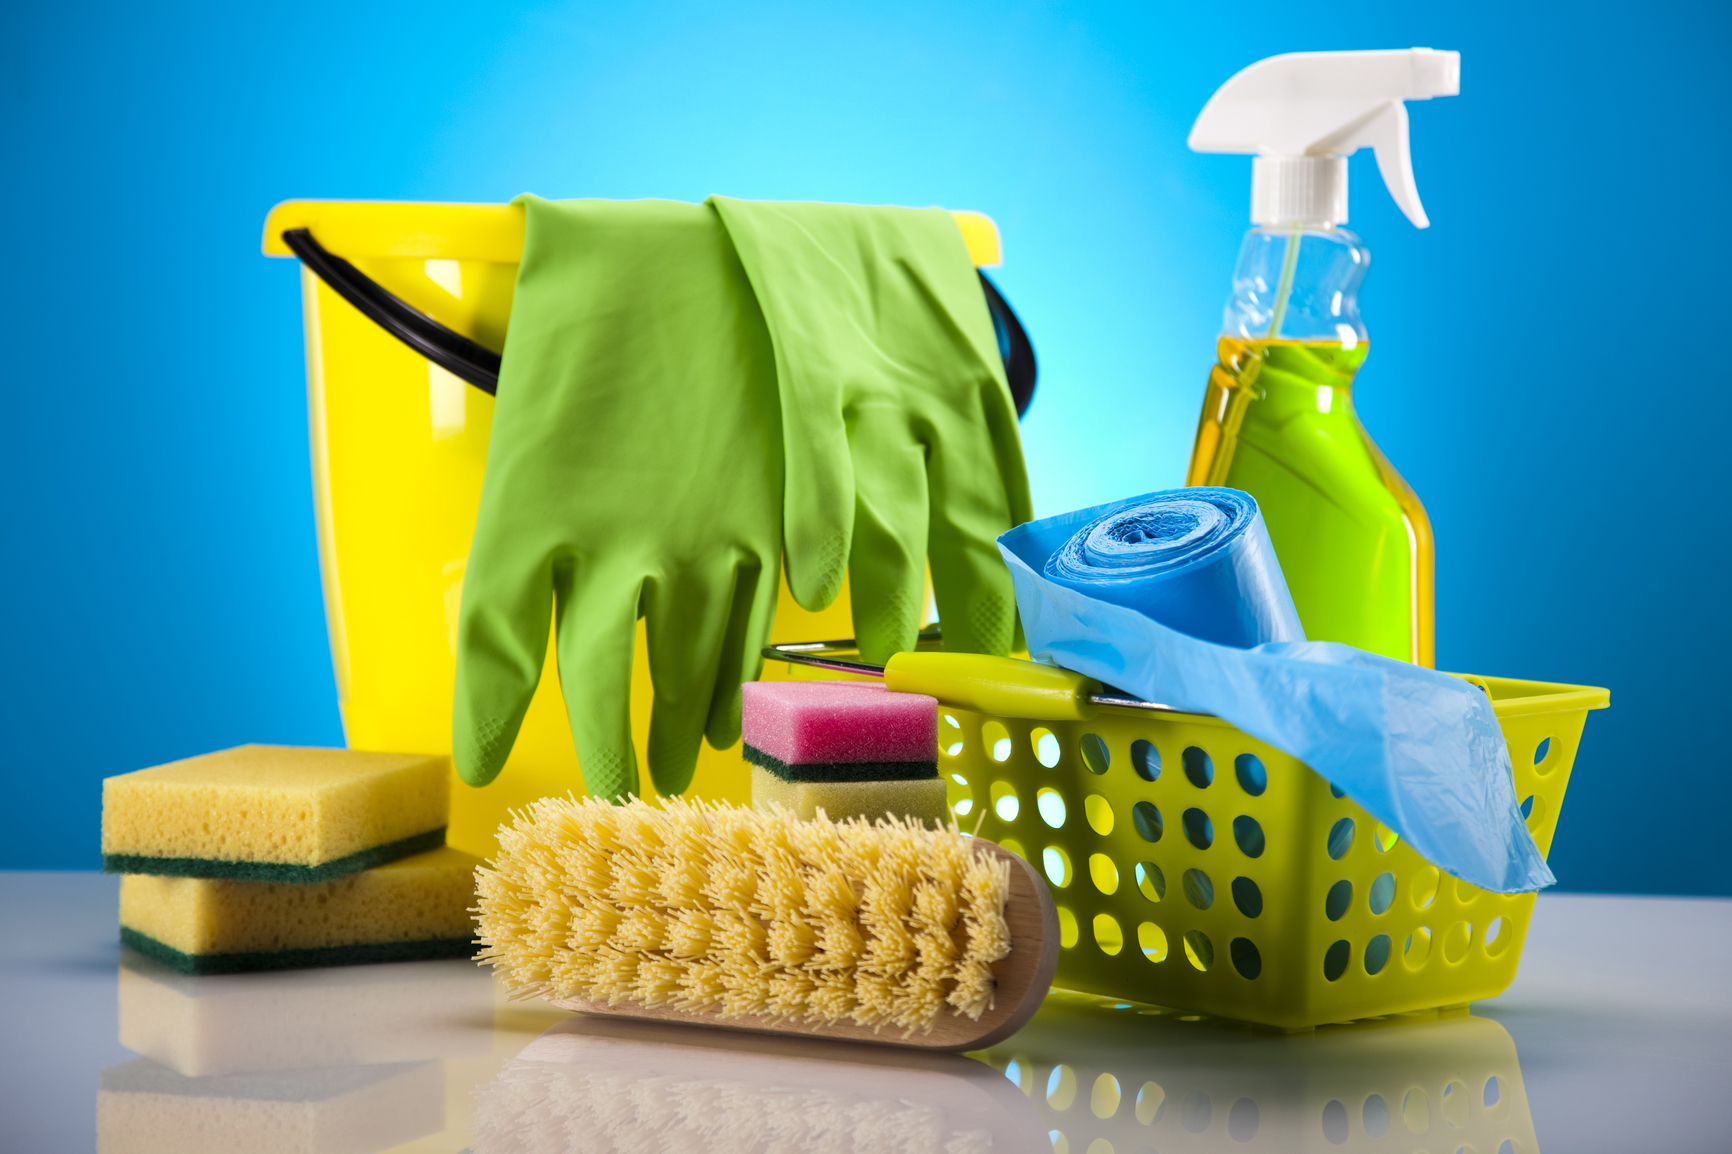 Marketing Tips for DOMESTIC and COMMERCIAL CLEANING & MAINTENANCE COMPANIES